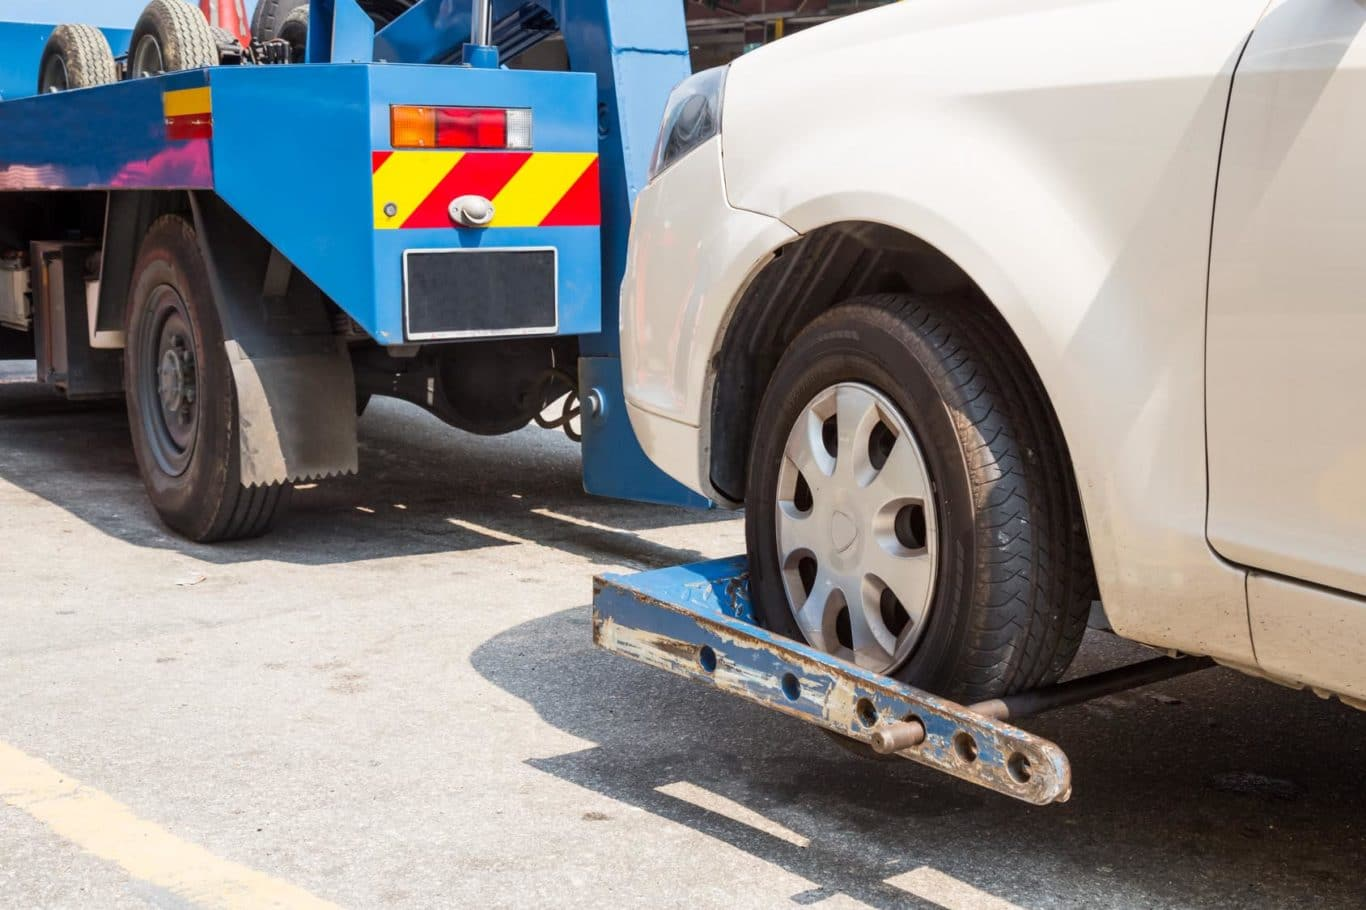 Monkstown expert Car Recovery services